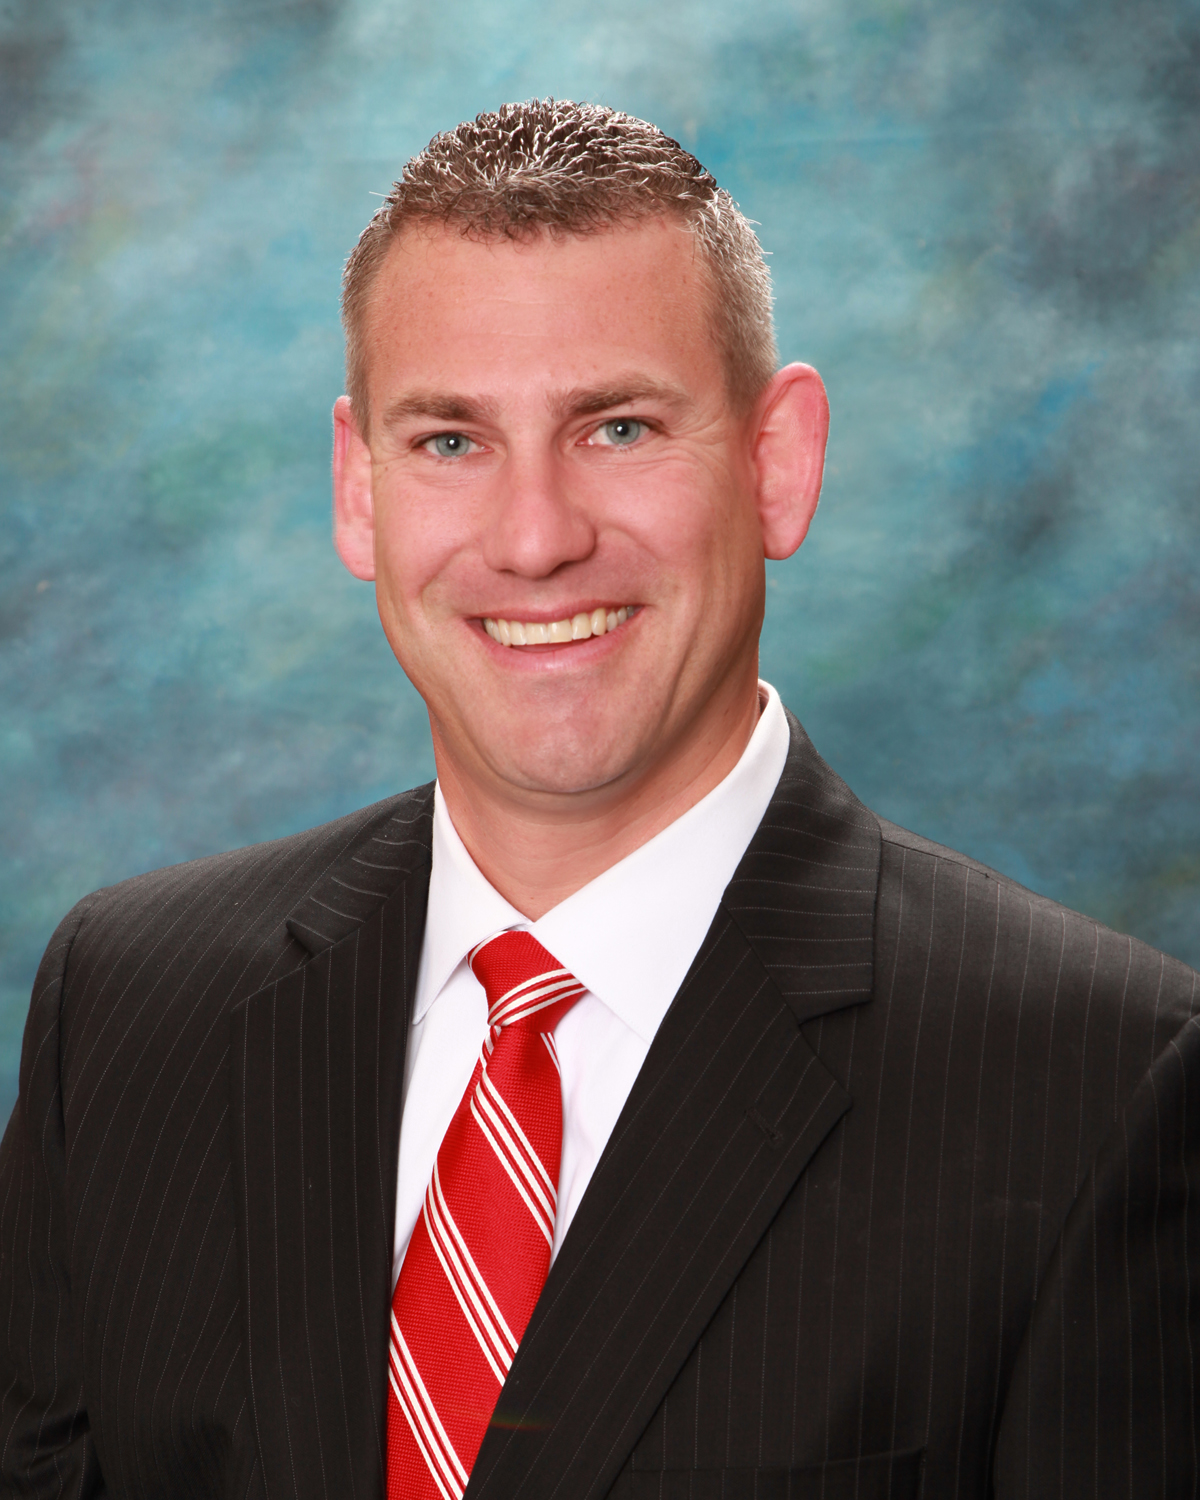 Brent Rasmussen is President of Mortgage Specialists LLC in Omaha, Neb. and Past President of the Nebraska Association of Mortgage Brokers (NEAMB)